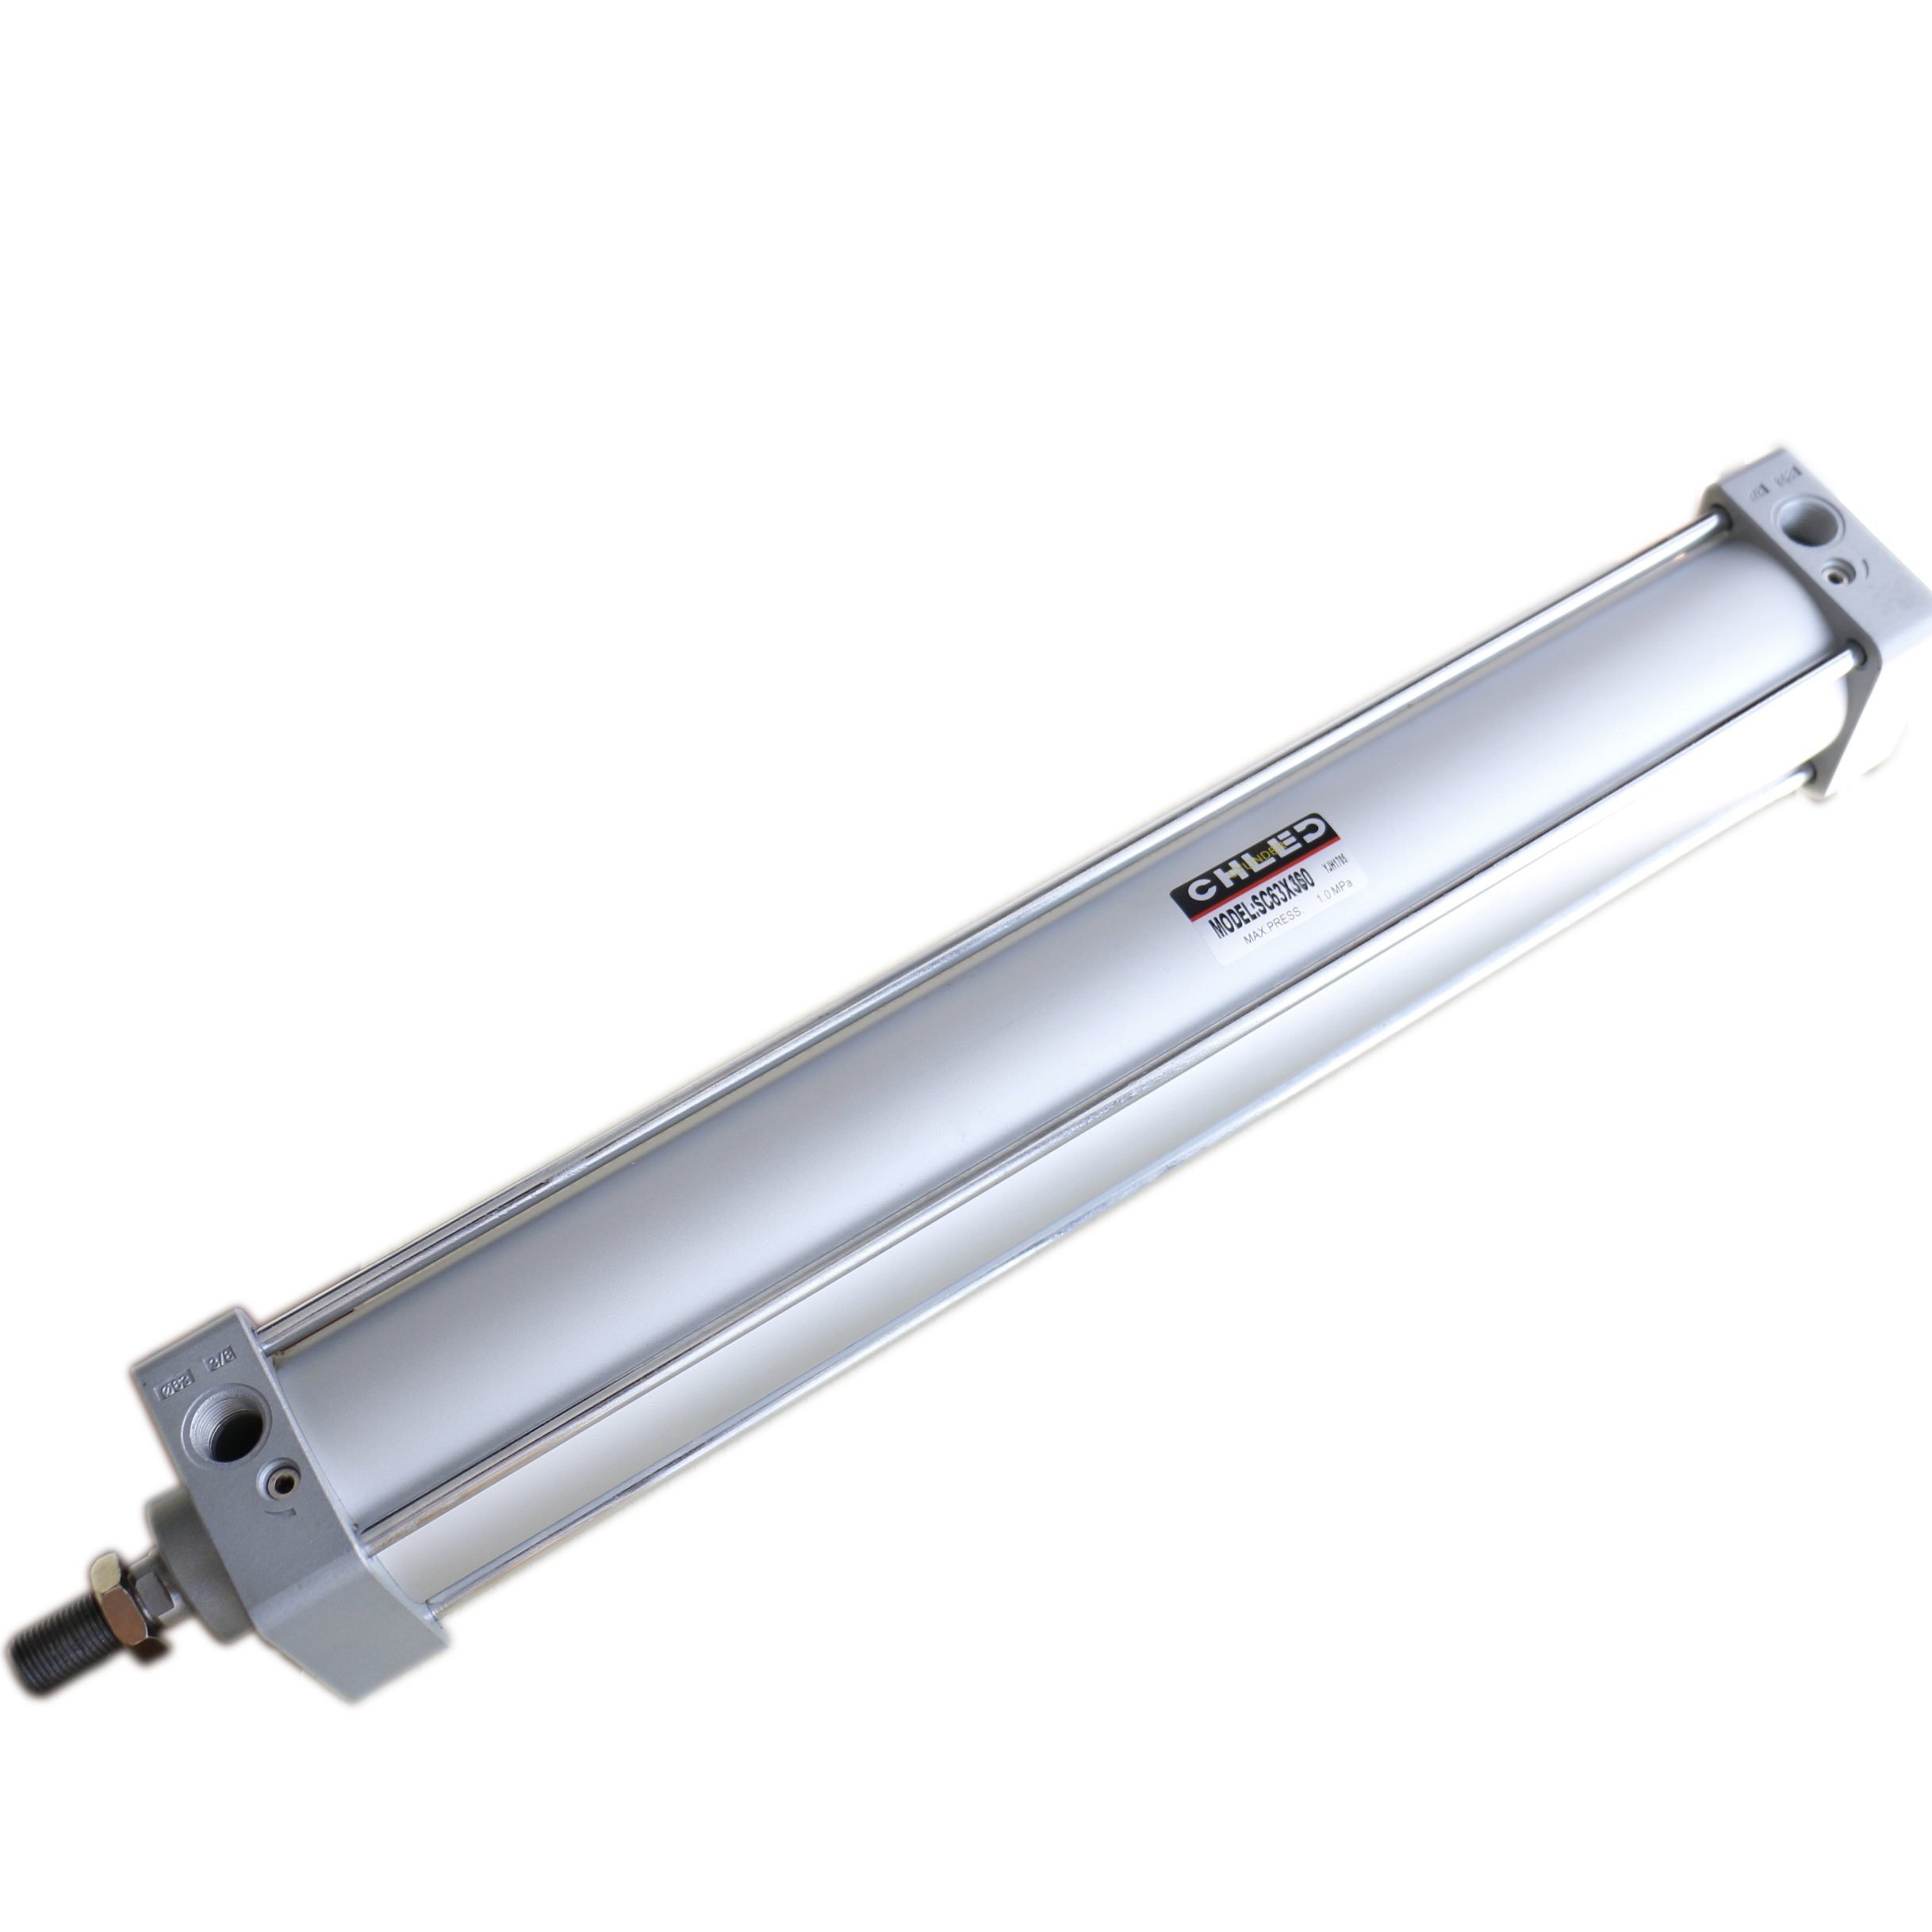 Baomain Pneumatic Air Cylinder SC 63 x 350 PT 3/8, Bore: 2 1/2 inch, Stroke: 14 inch, Screwed Piston Rod Dual Action